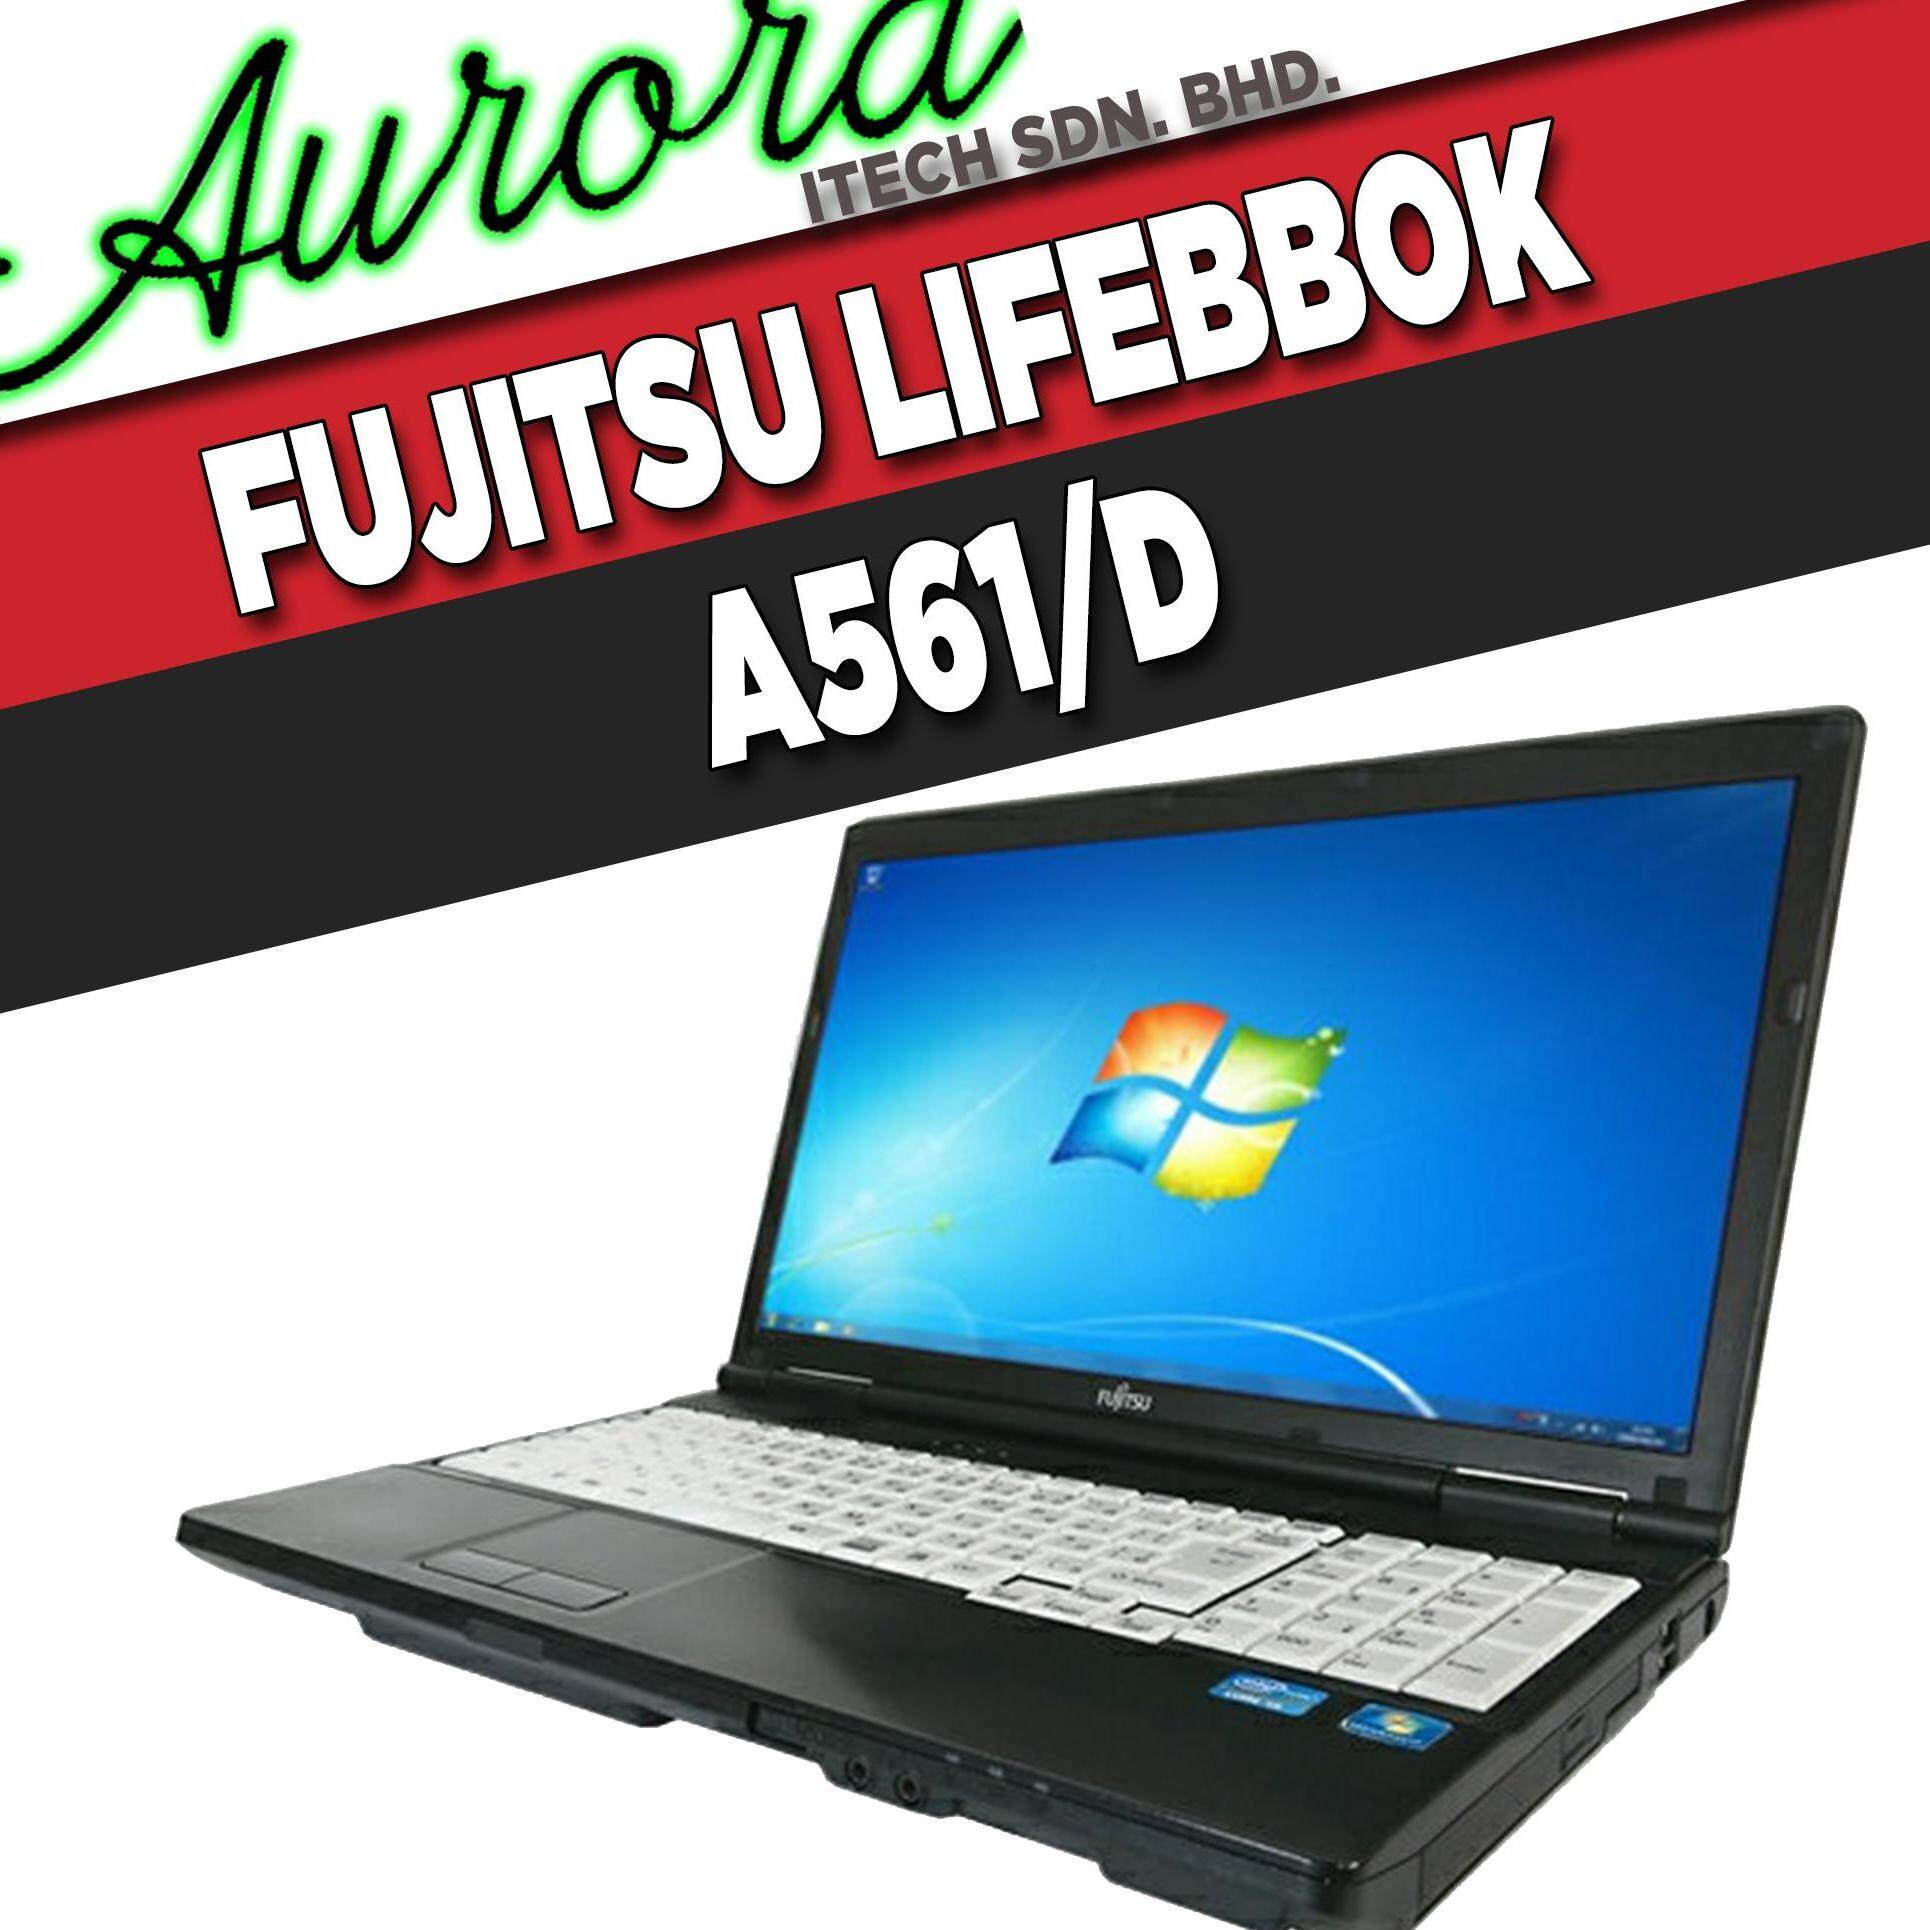 (REFURBISHED) FUJITSU LIFEBOOK A561/D / INTEL CORE i3-2ND GENERATION / 4 GB DDR3 RAM / 250 GB SATA HDD / 15.6 INCH LCD / 1 YearWarranty, Free Mouse Malaysia